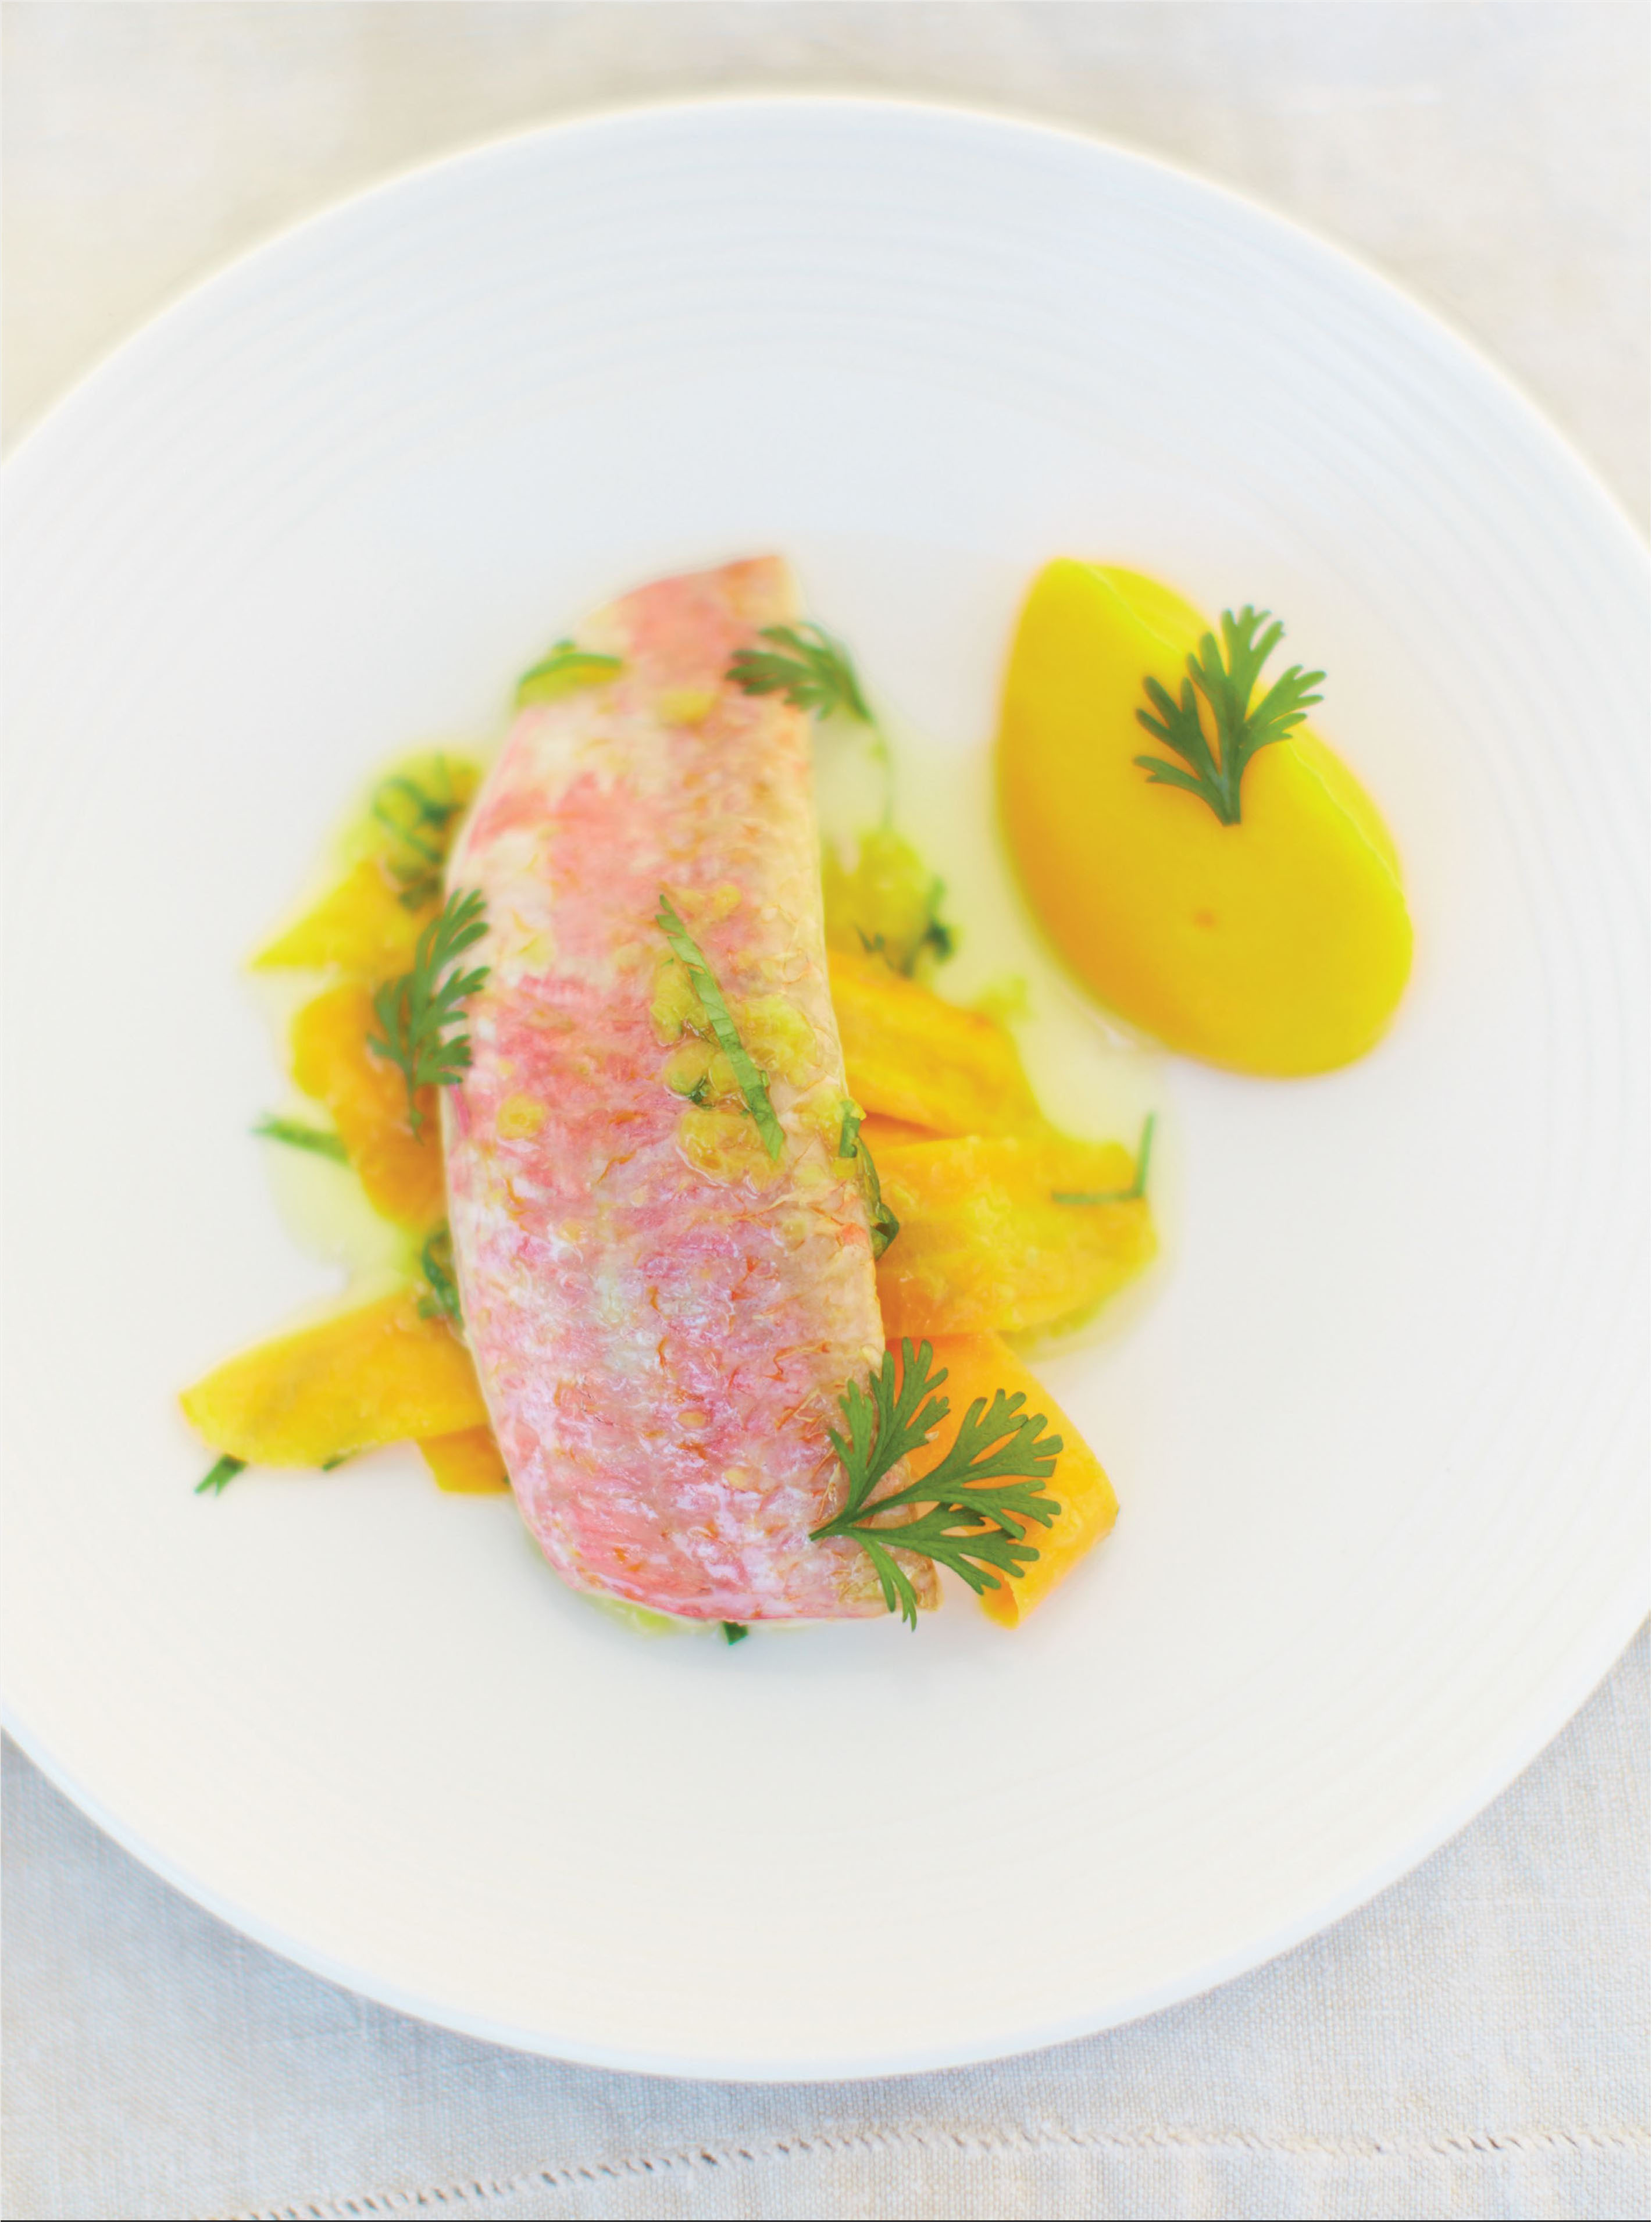 Soused red mullet with saffron and carrots